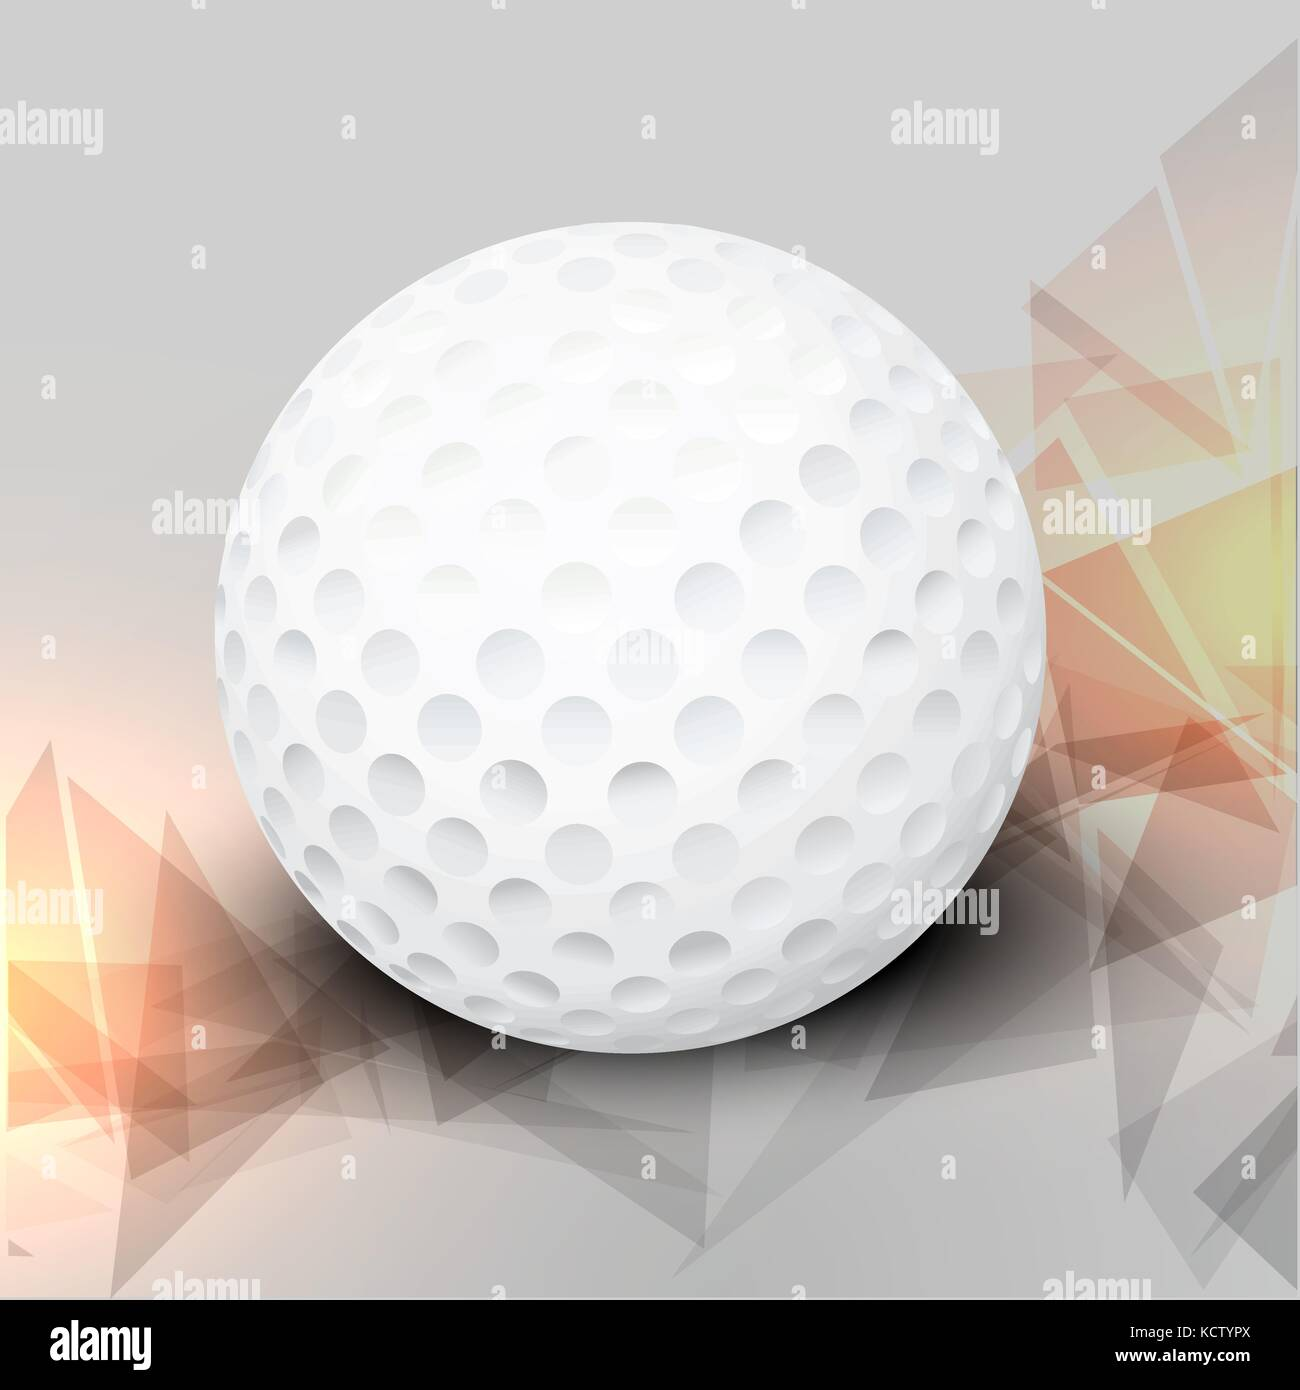 Vector golf ball in a realistic style. - Stock Image